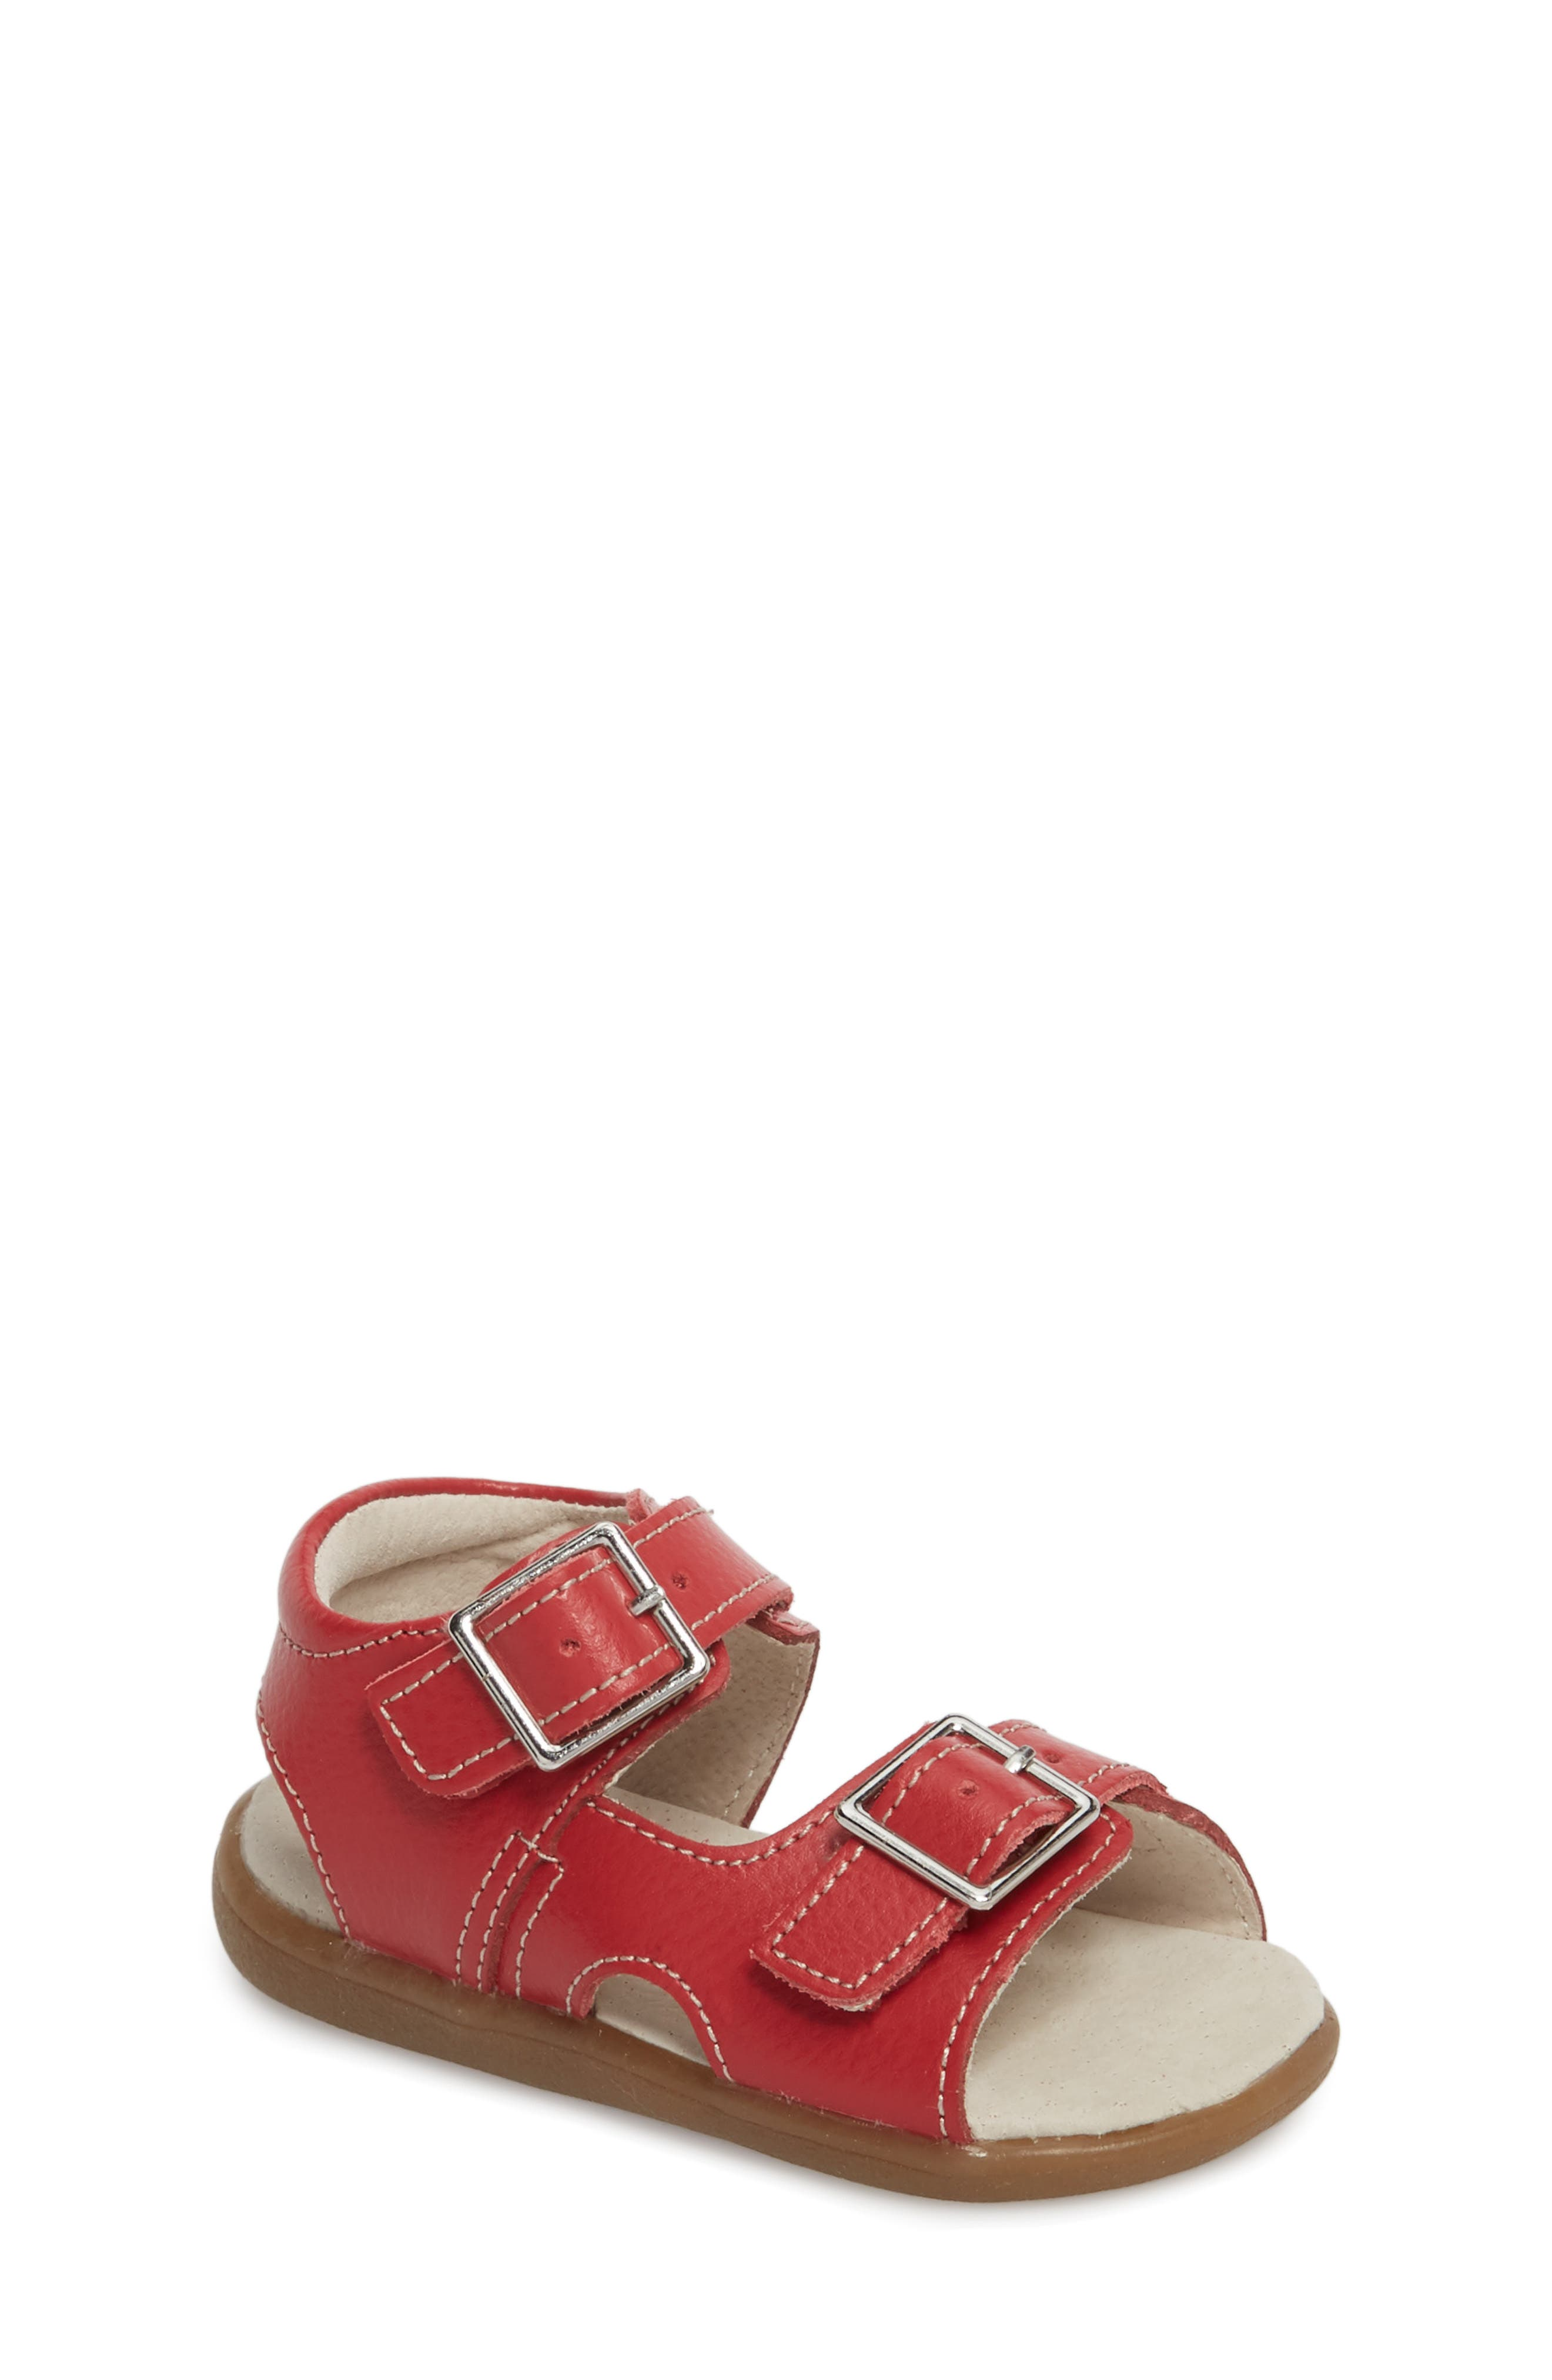 Jackson Sandal,                         Main,                         color, Red